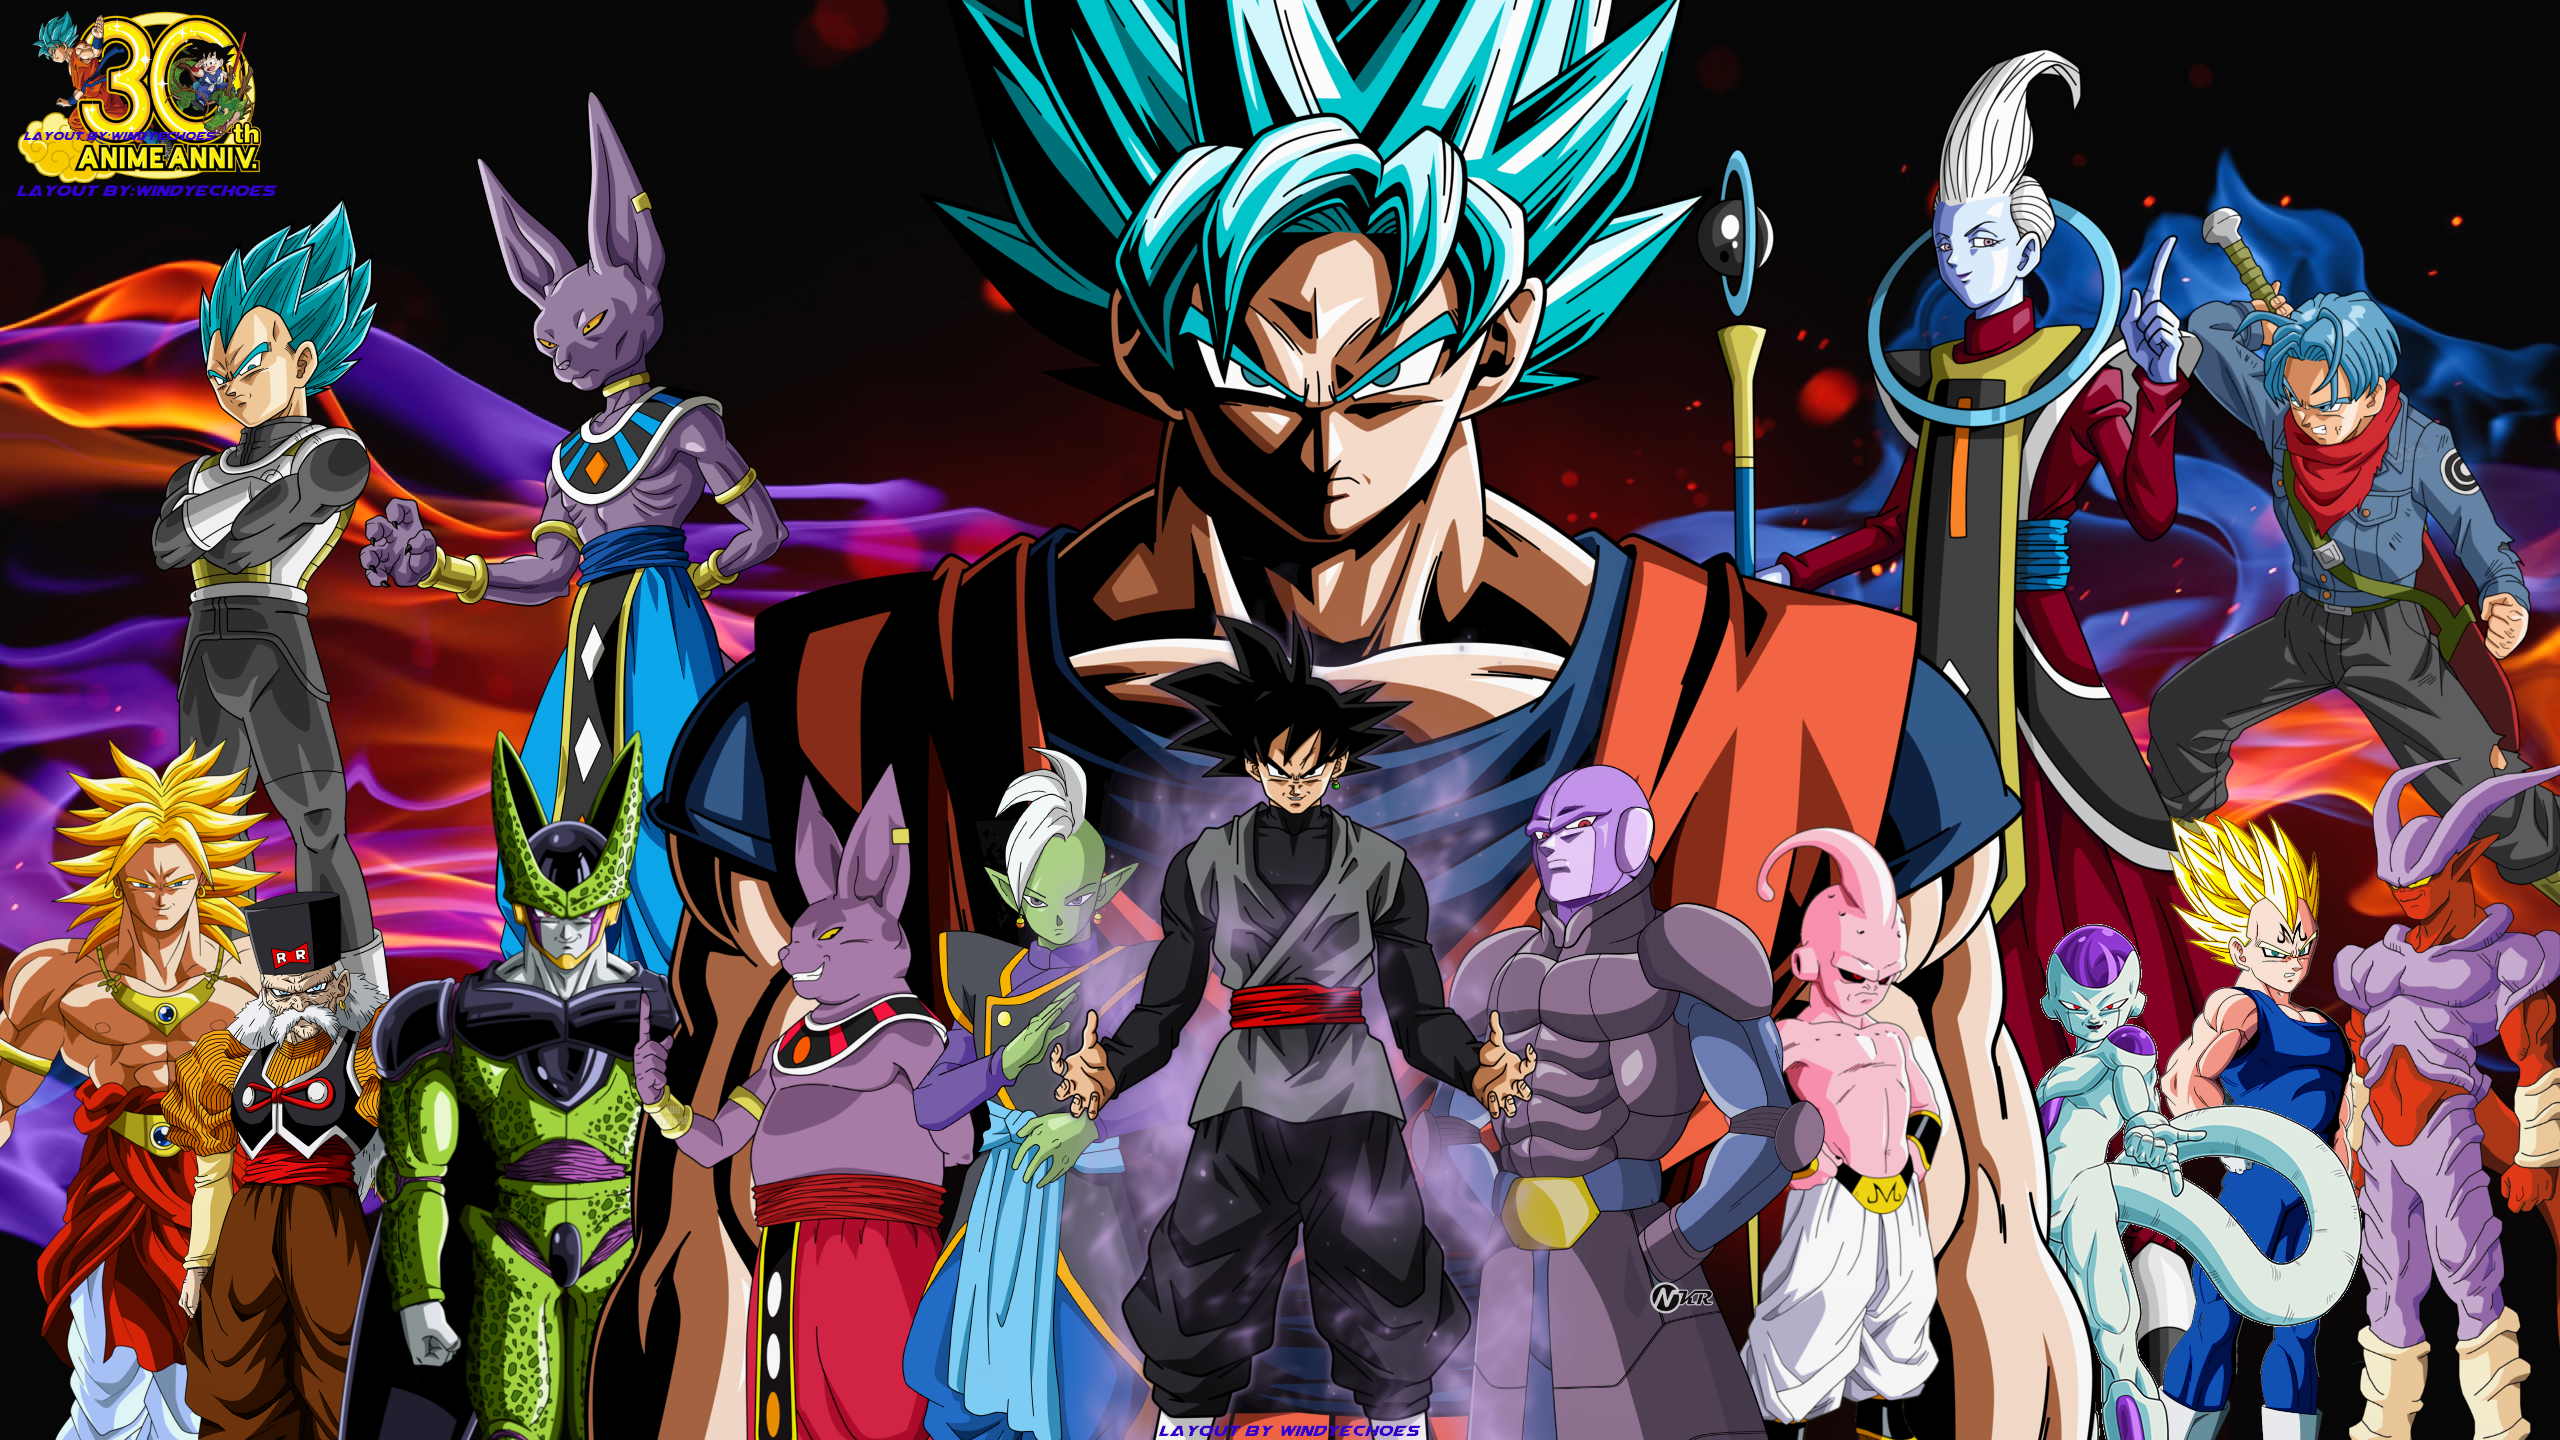 Dragon Ball Super Wallpaper Photo On Wallpaper 1080p HD